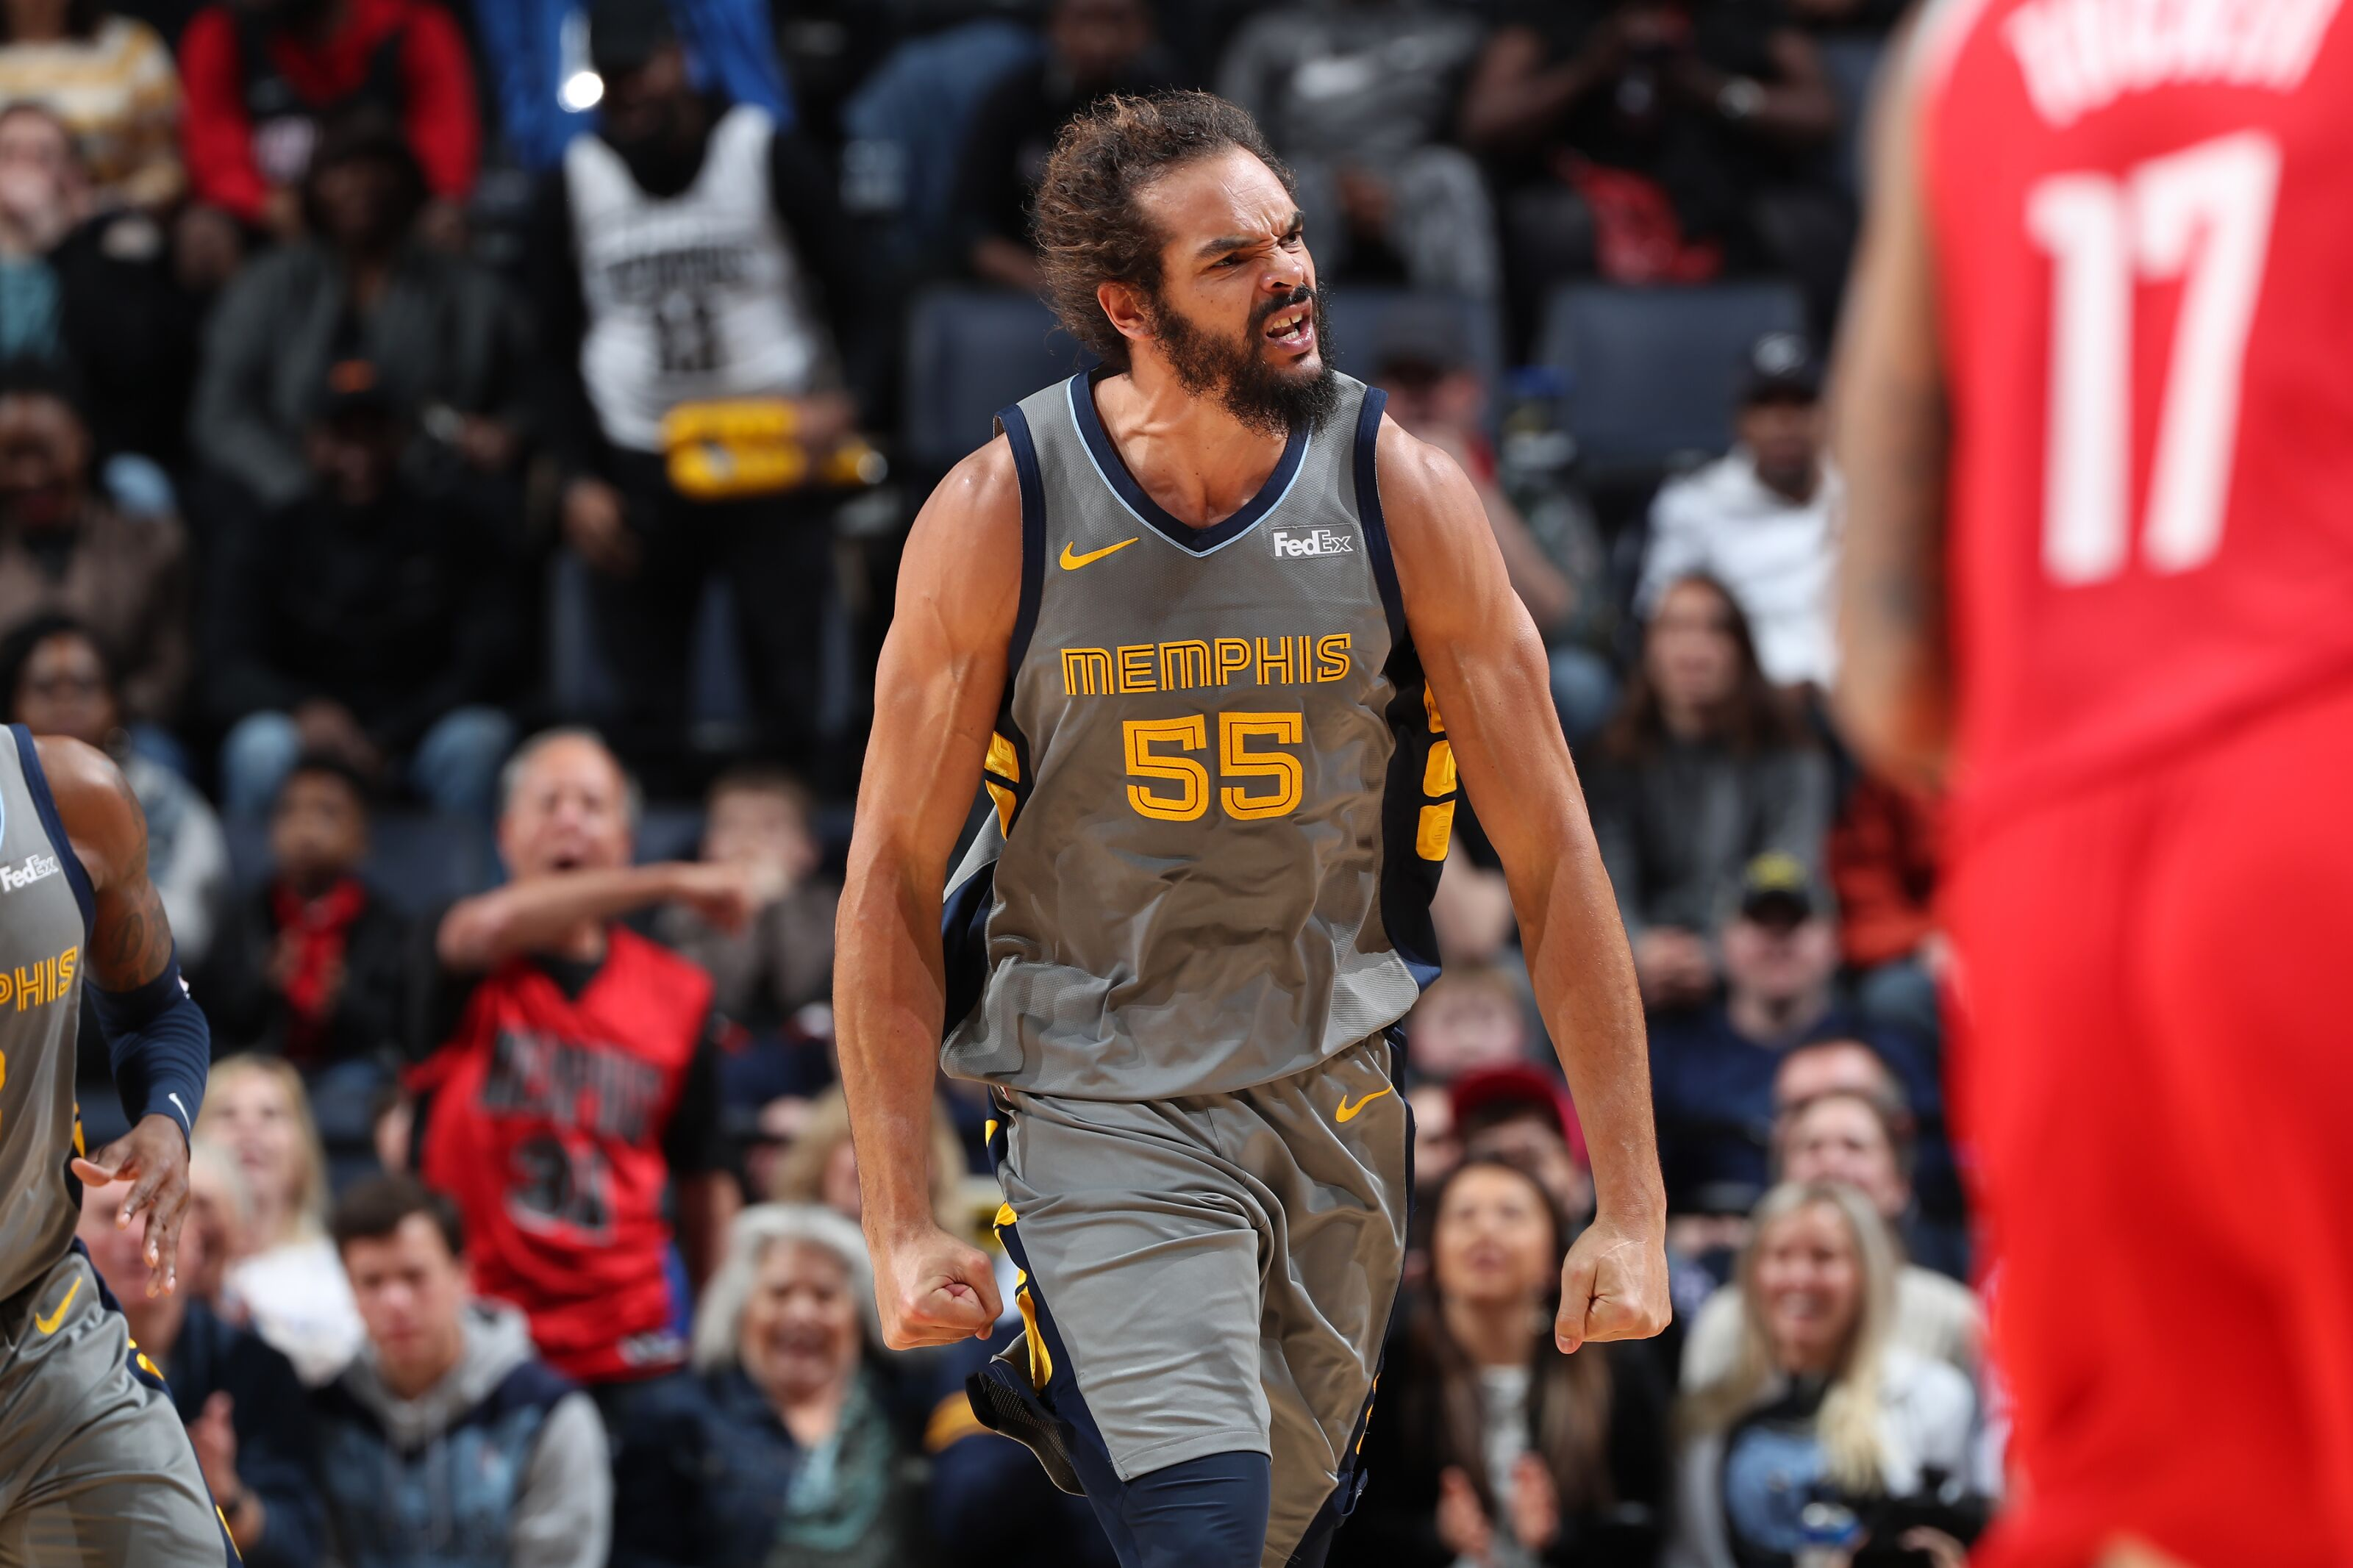 Los Angeles Lakers must sign Joakim Noah to replace DeMarcus Cousins